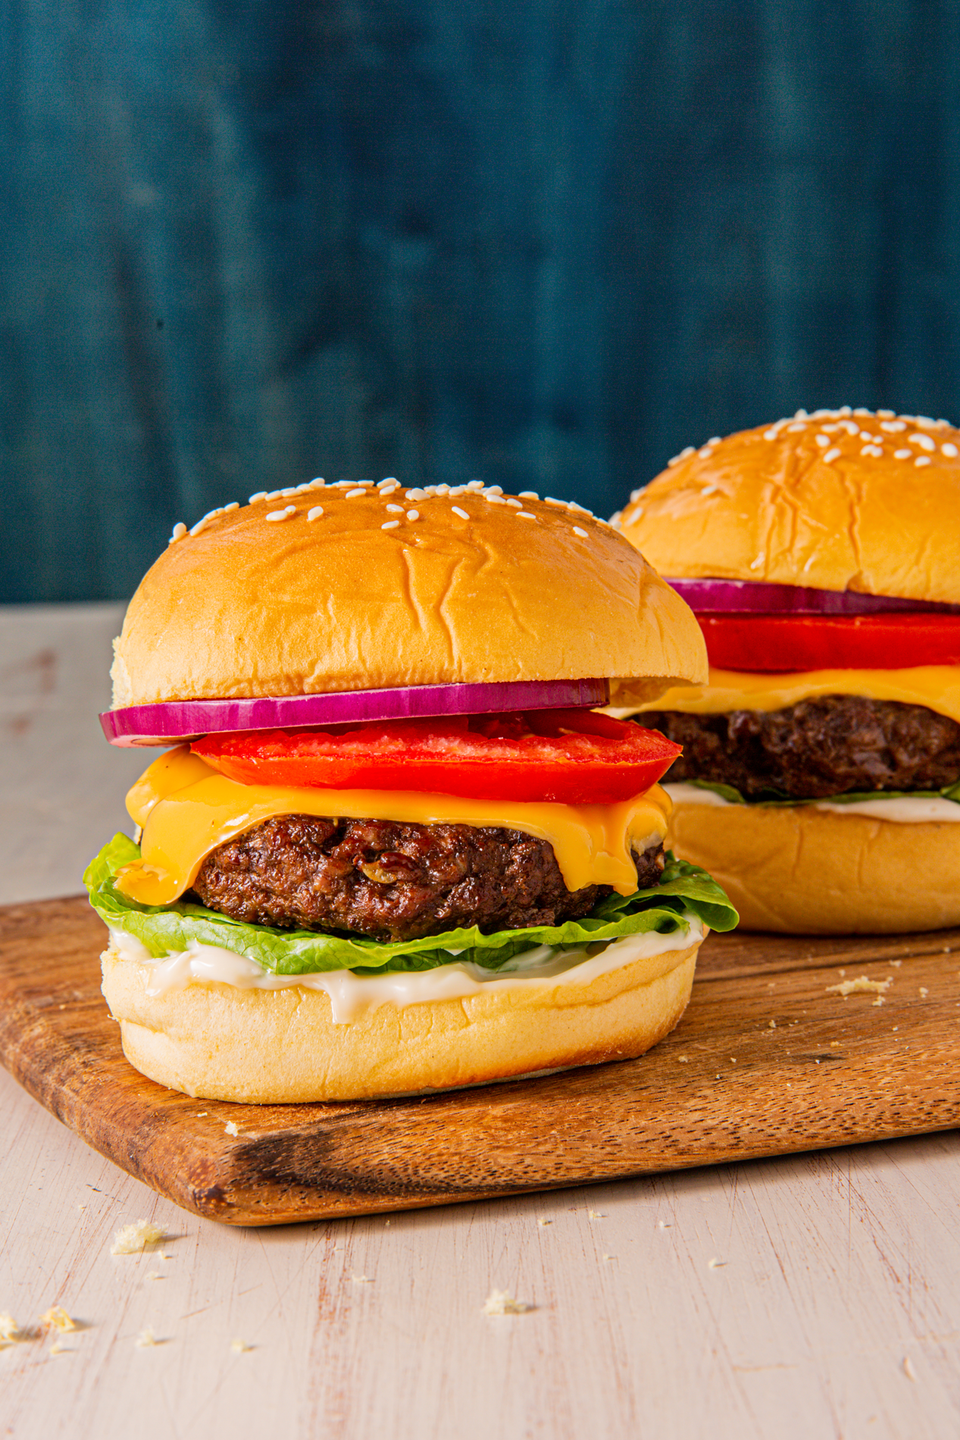 "<p>Is there anything your air fryer <em>can't </em>do?</p><p>Get the recipe from <a href=""https://www.delish.com/cooking/recipe-ideas/a28509043/air-fryer-hamburgers-recipe/"" rel=""nofollow noopener"" target=""_blank"" data-ylk=""slk:Delish"" class=""link rapid-noclick-resp"">Delish</a>.</p>"